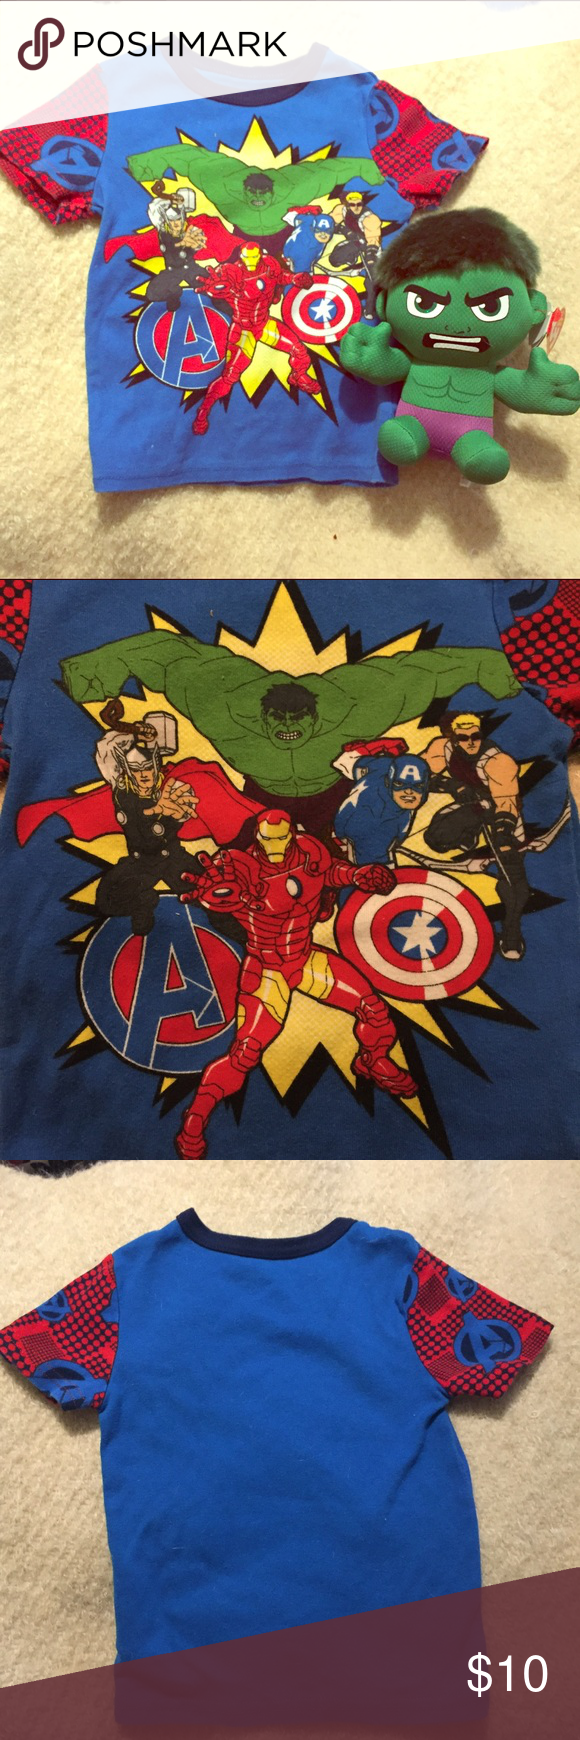 Avengers T shirt & toy EUC 3T Kids Tee- Disney and Marvel- THE AVENGERS! 100% cotton (Hulk Beanie Baby-NWT comes with purchase.) NO TRADES Disney Shirts & Tops Tees - Short Sleeve